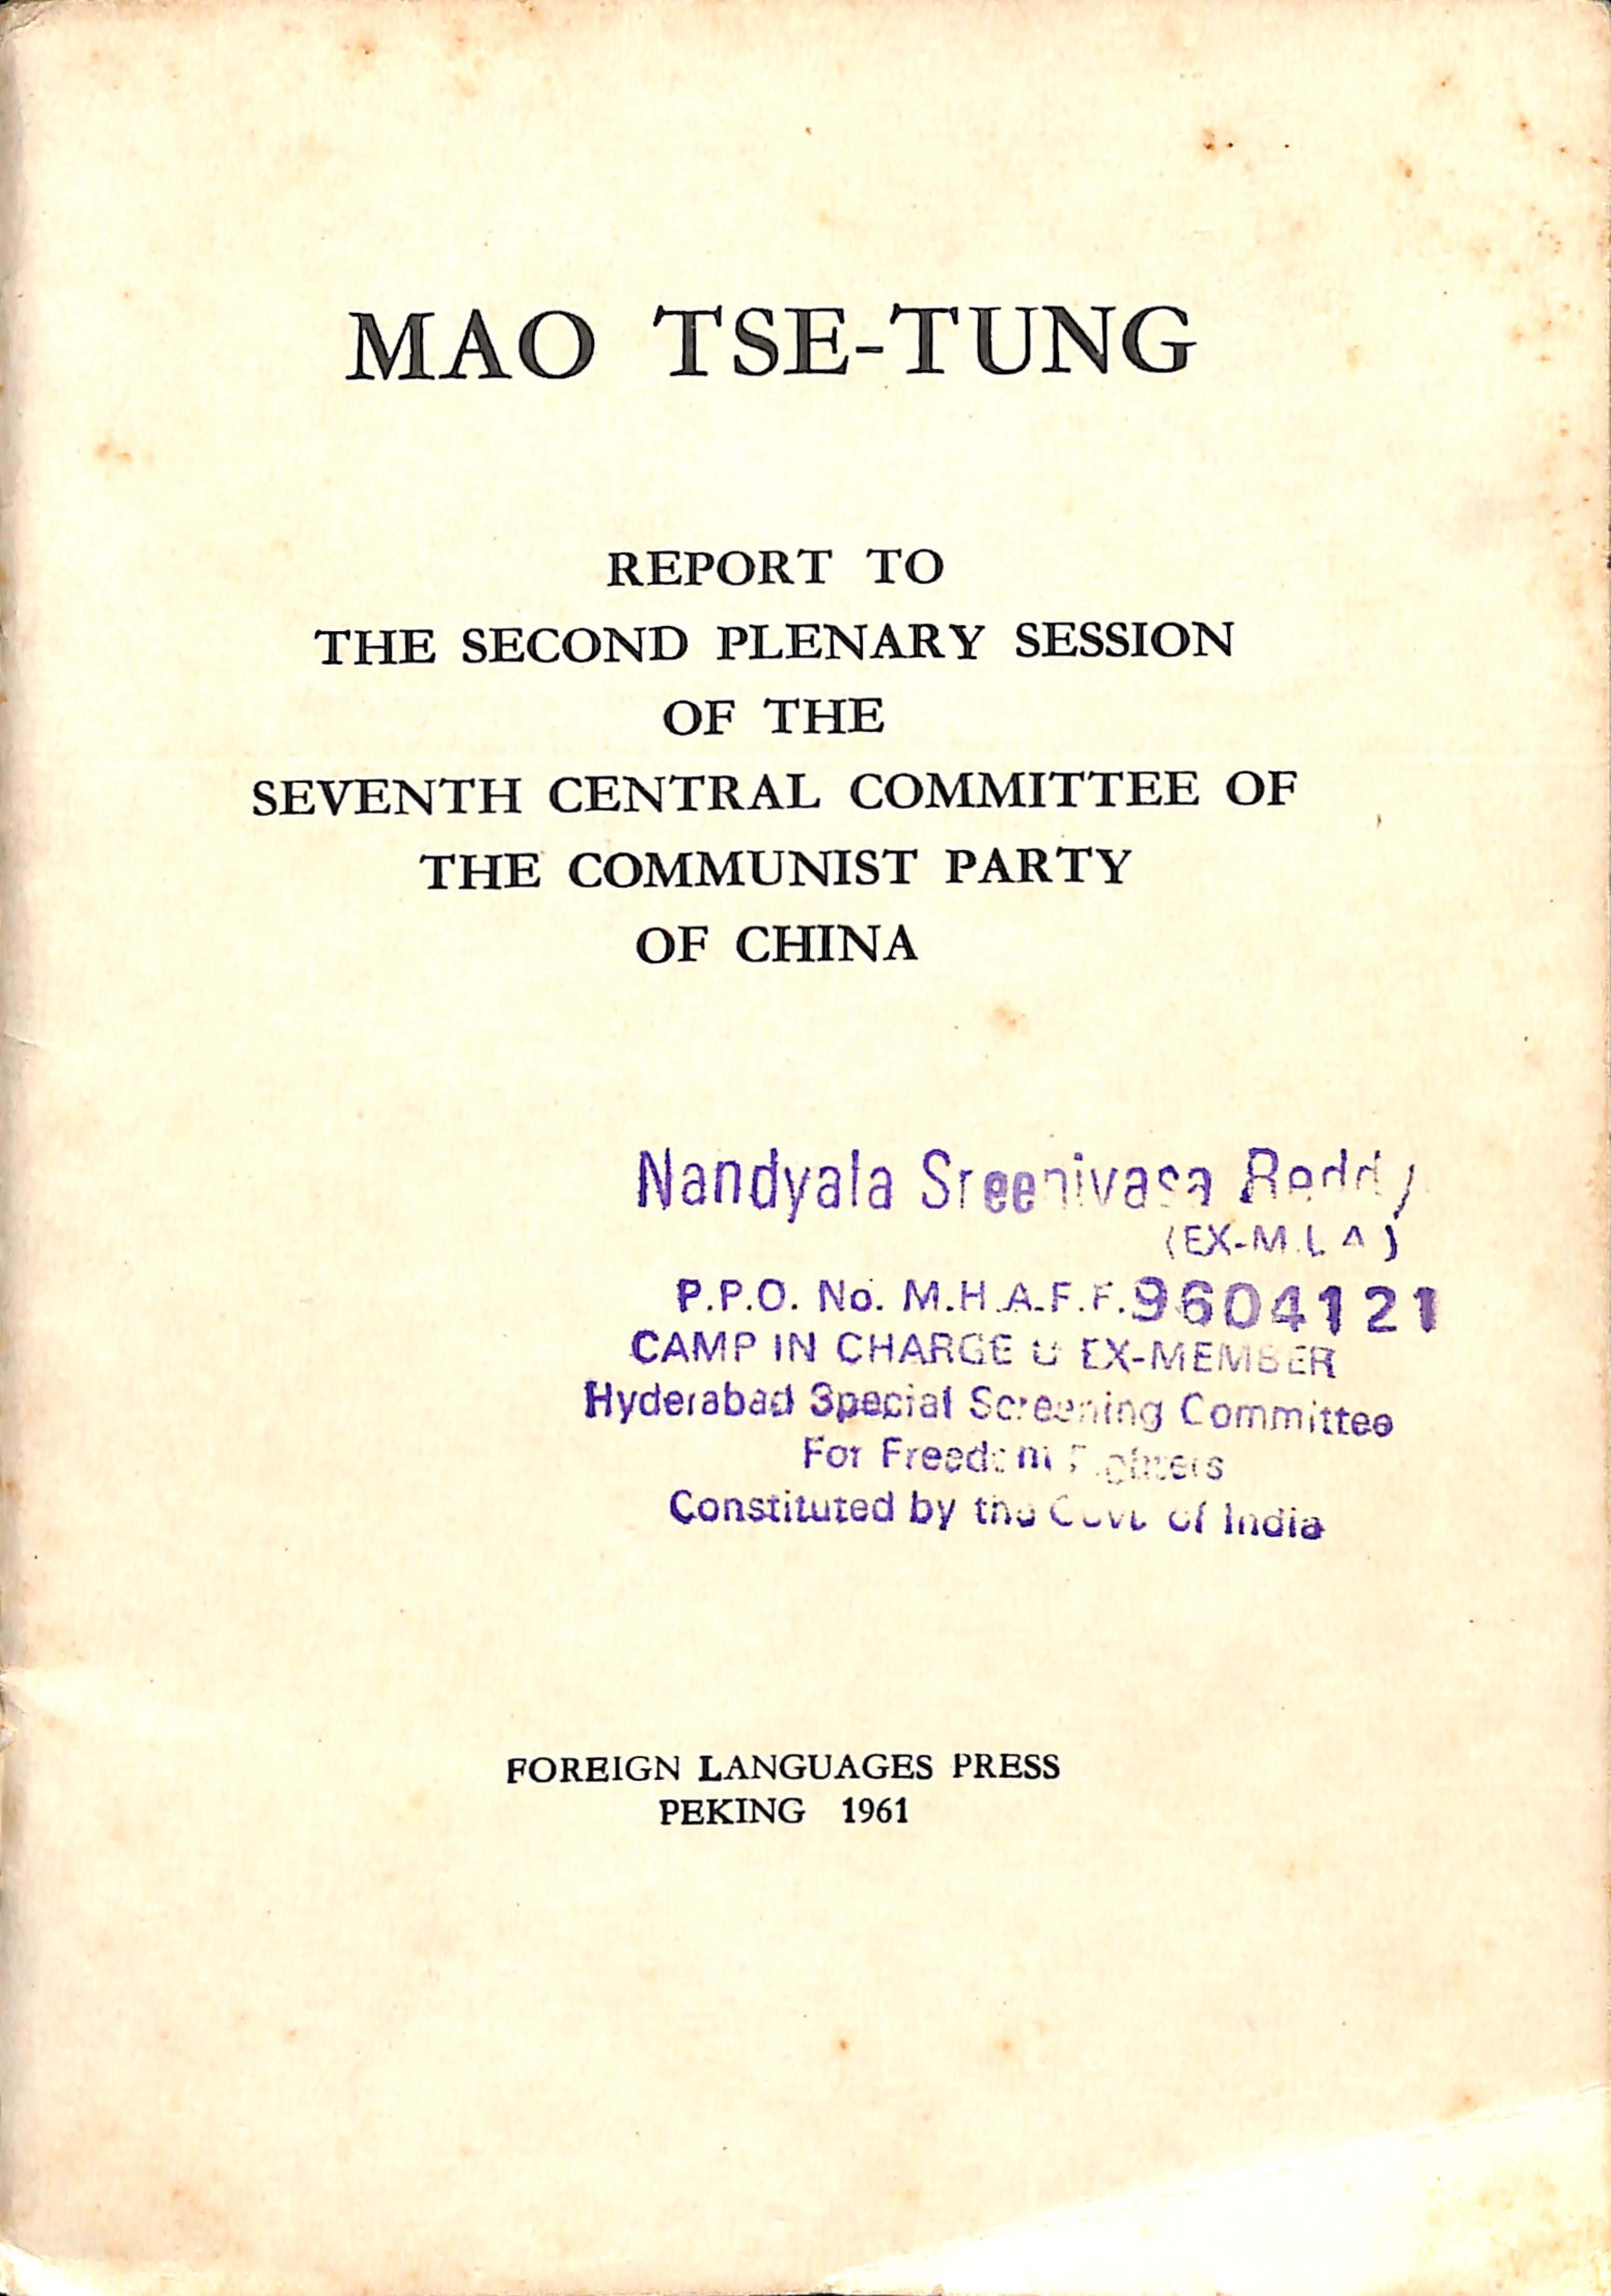 MAO TSE - TSE  report tp the second plenary session of the 7th central commitee of the communist party of china